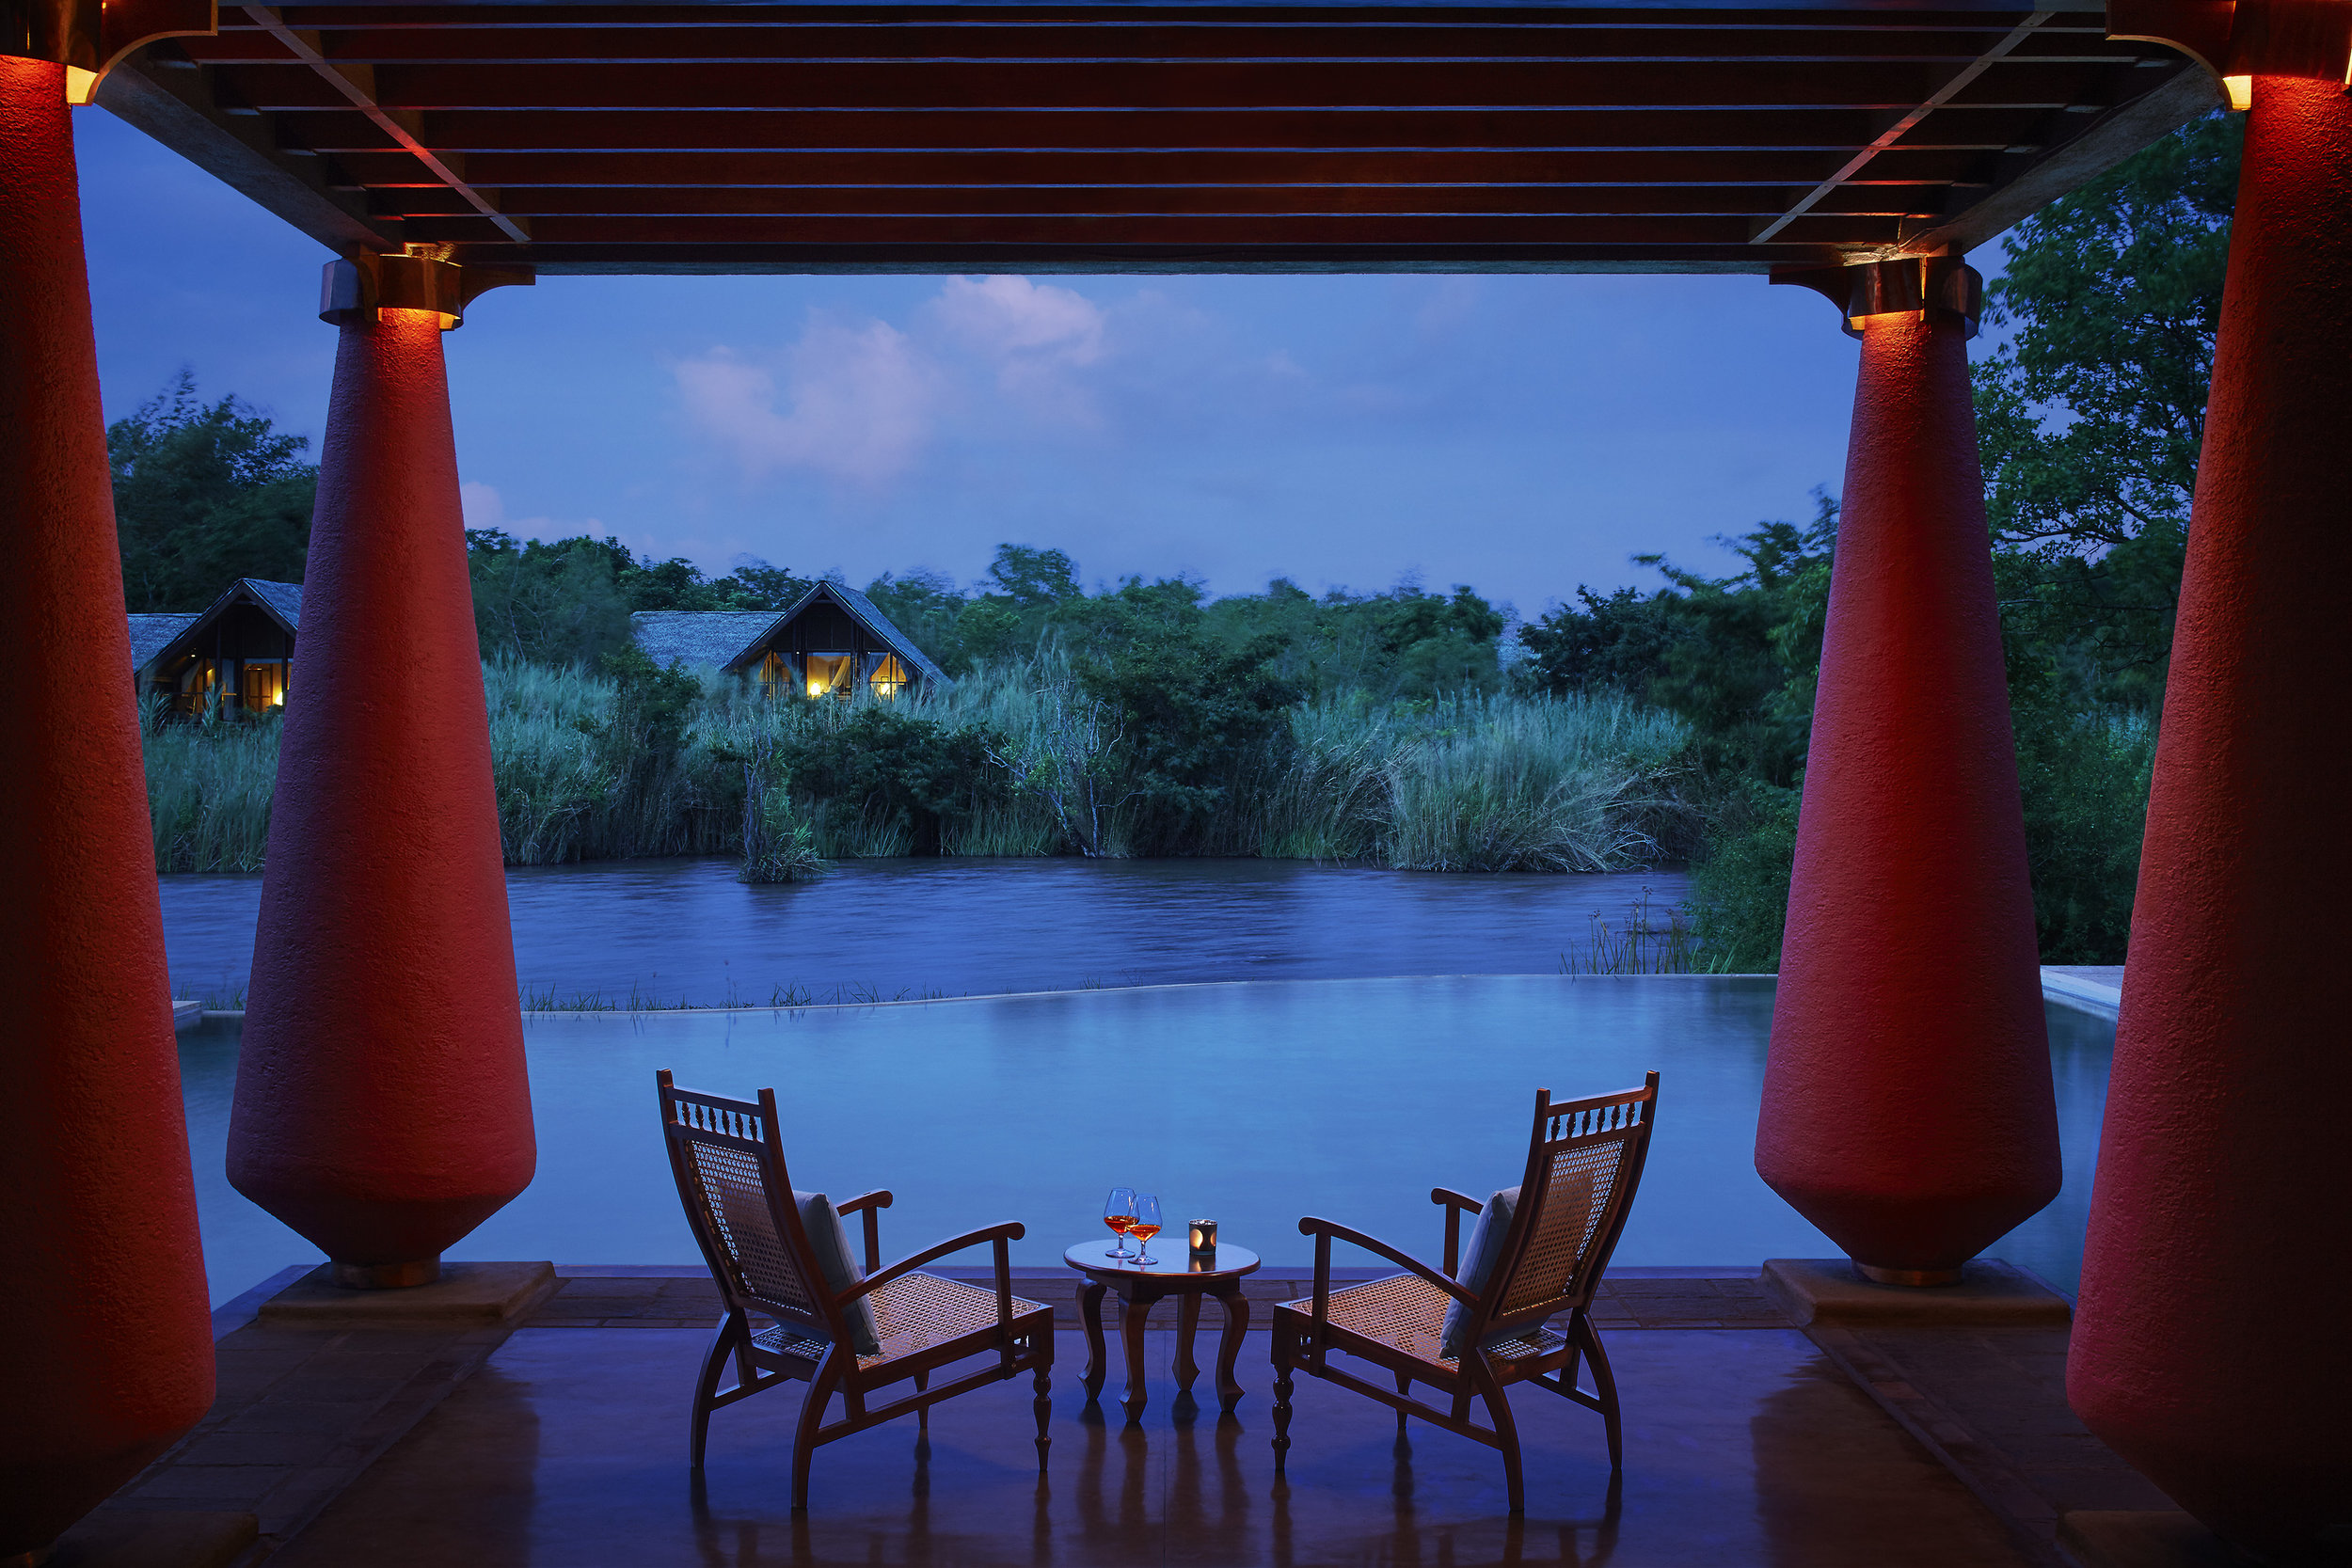 invite-to-paradise-sri-lanka-specialists-experts-travel-agent-tour-operator-jetwing-viluyana-hotel-cultural-triangle-sulang-cafe-1.jpg